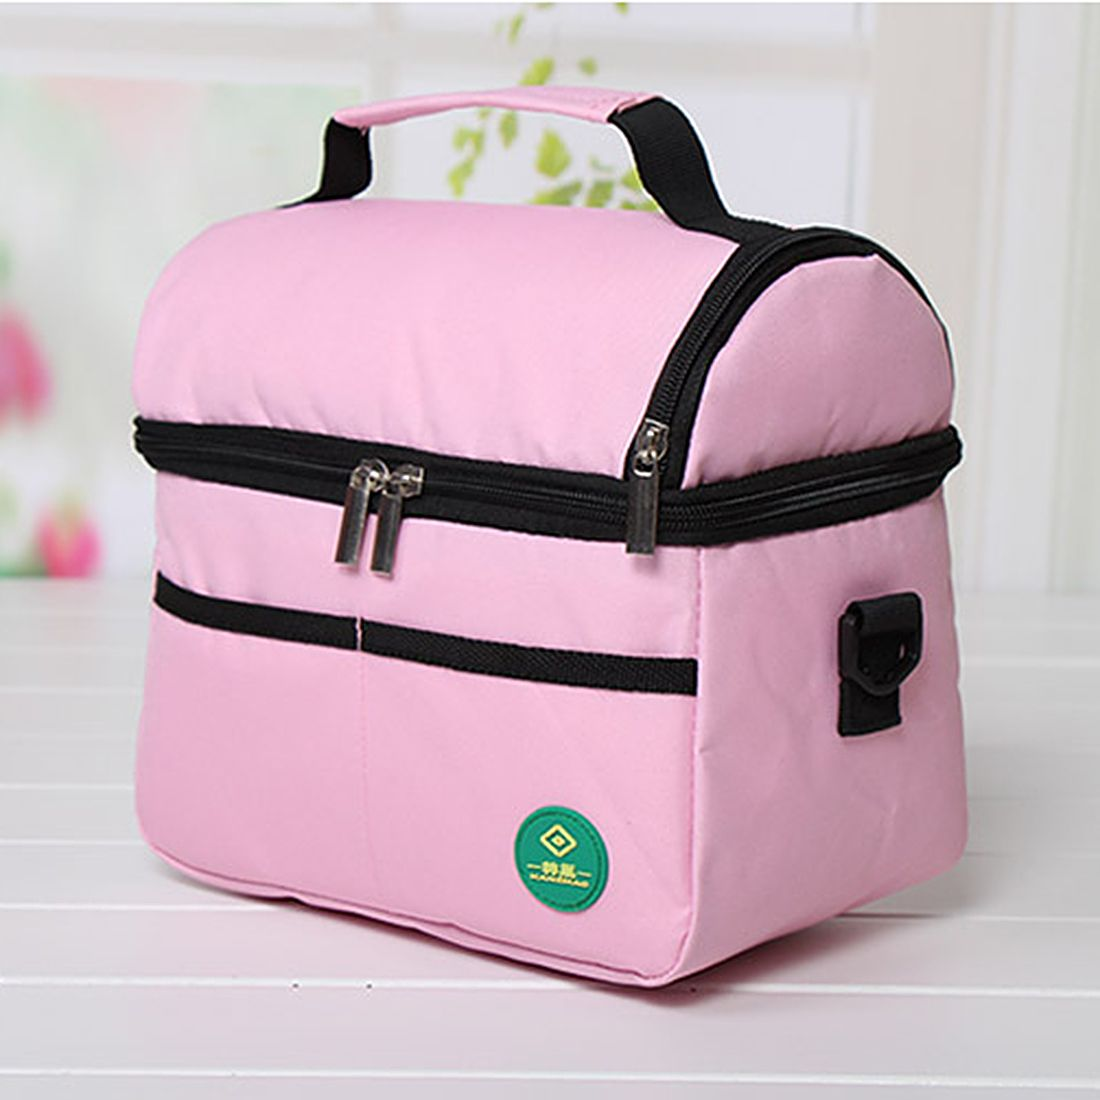 Double Layer Portable Lunch Storage Bag Thermal Cooler Camping Picnic Bento…